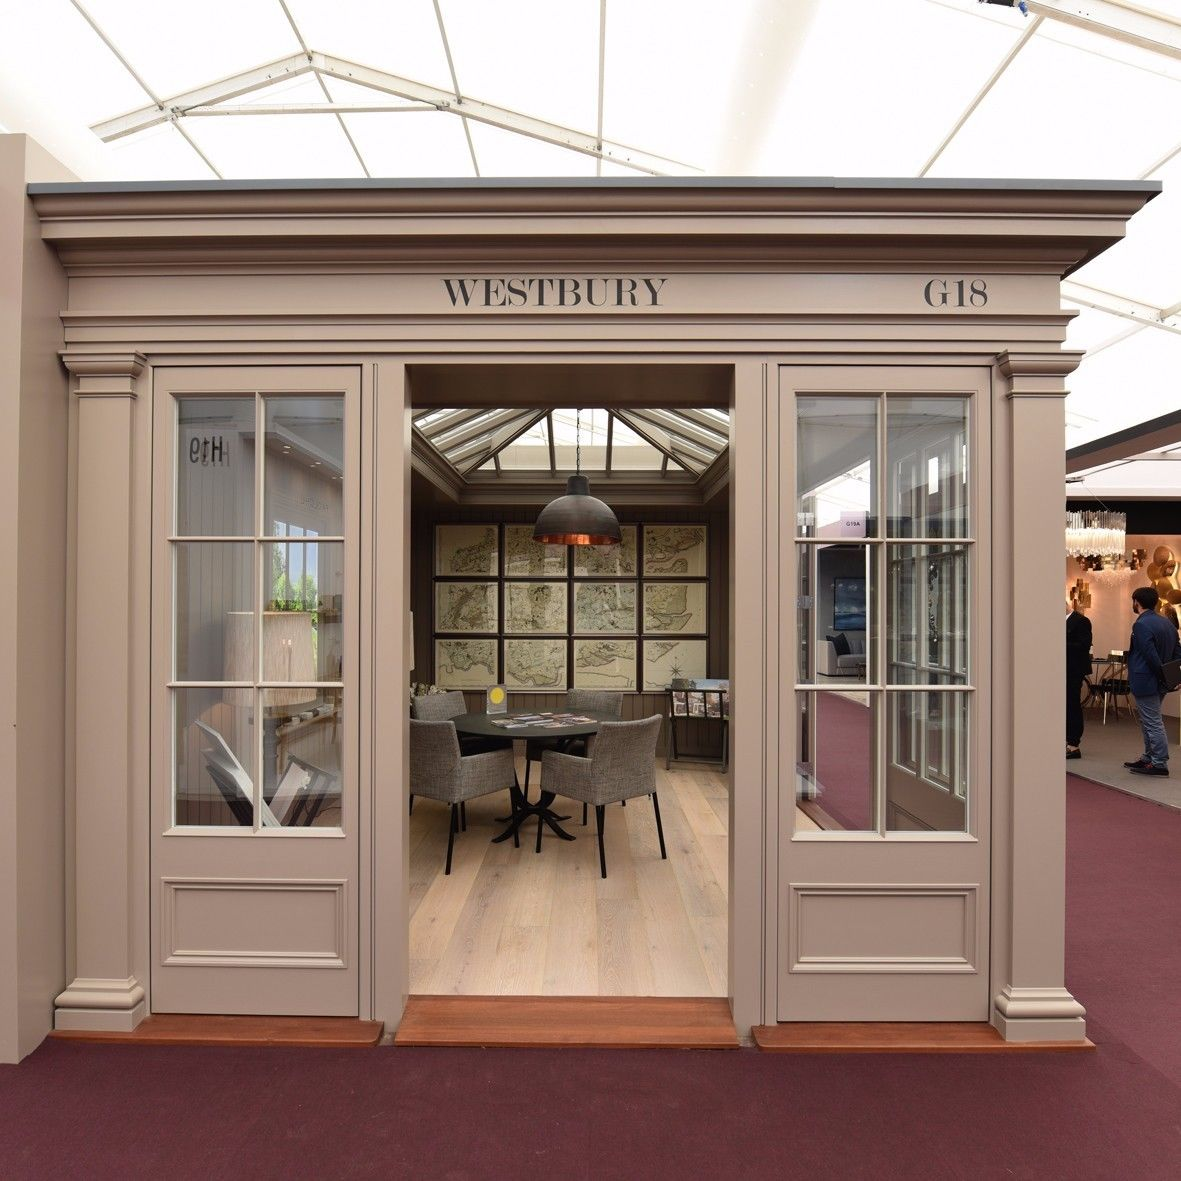 Westbury Garden Rooms: Westbury Awarded Prize For Excellence At Decorex 2017